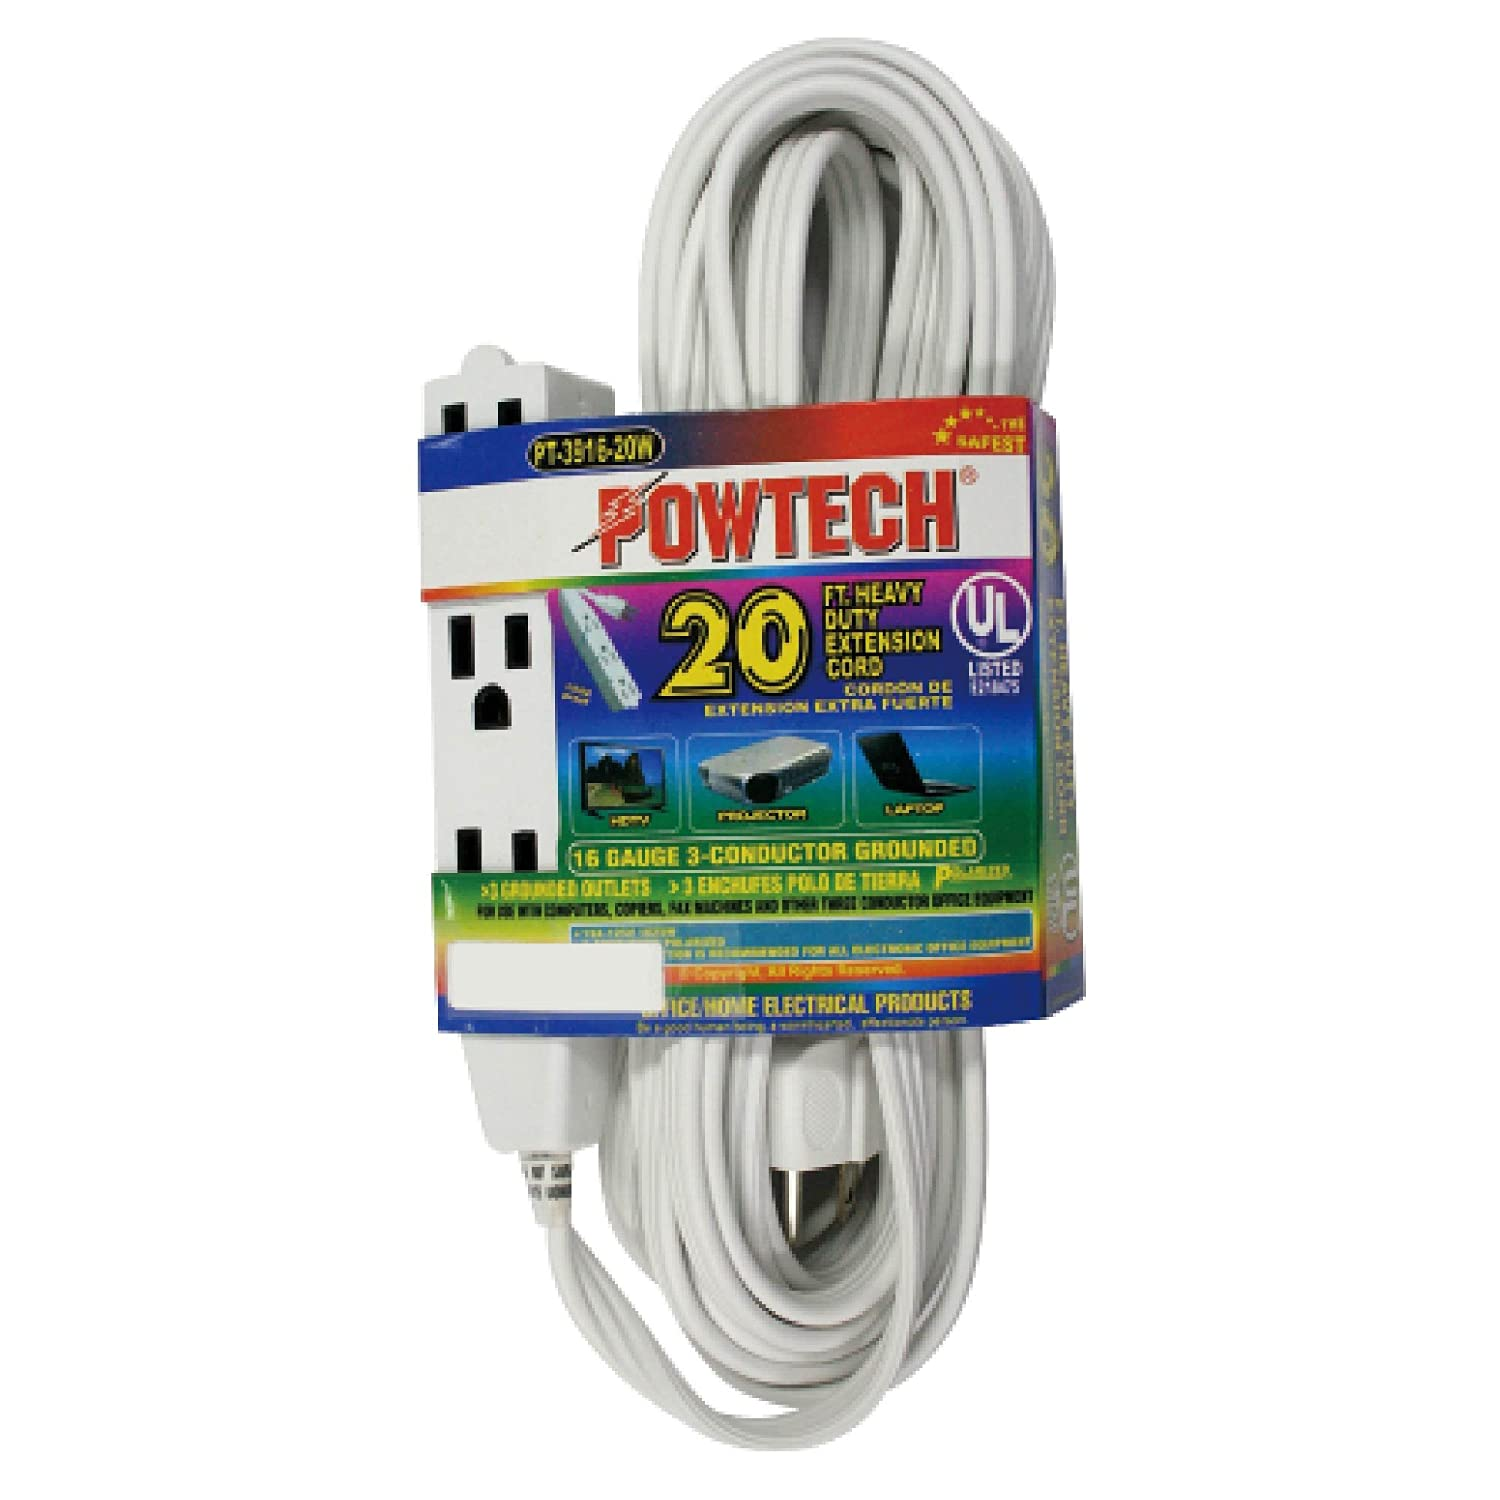 POWTECH Heavy Duty 3 Outlet Grounded Indoor Home Office Extention ...